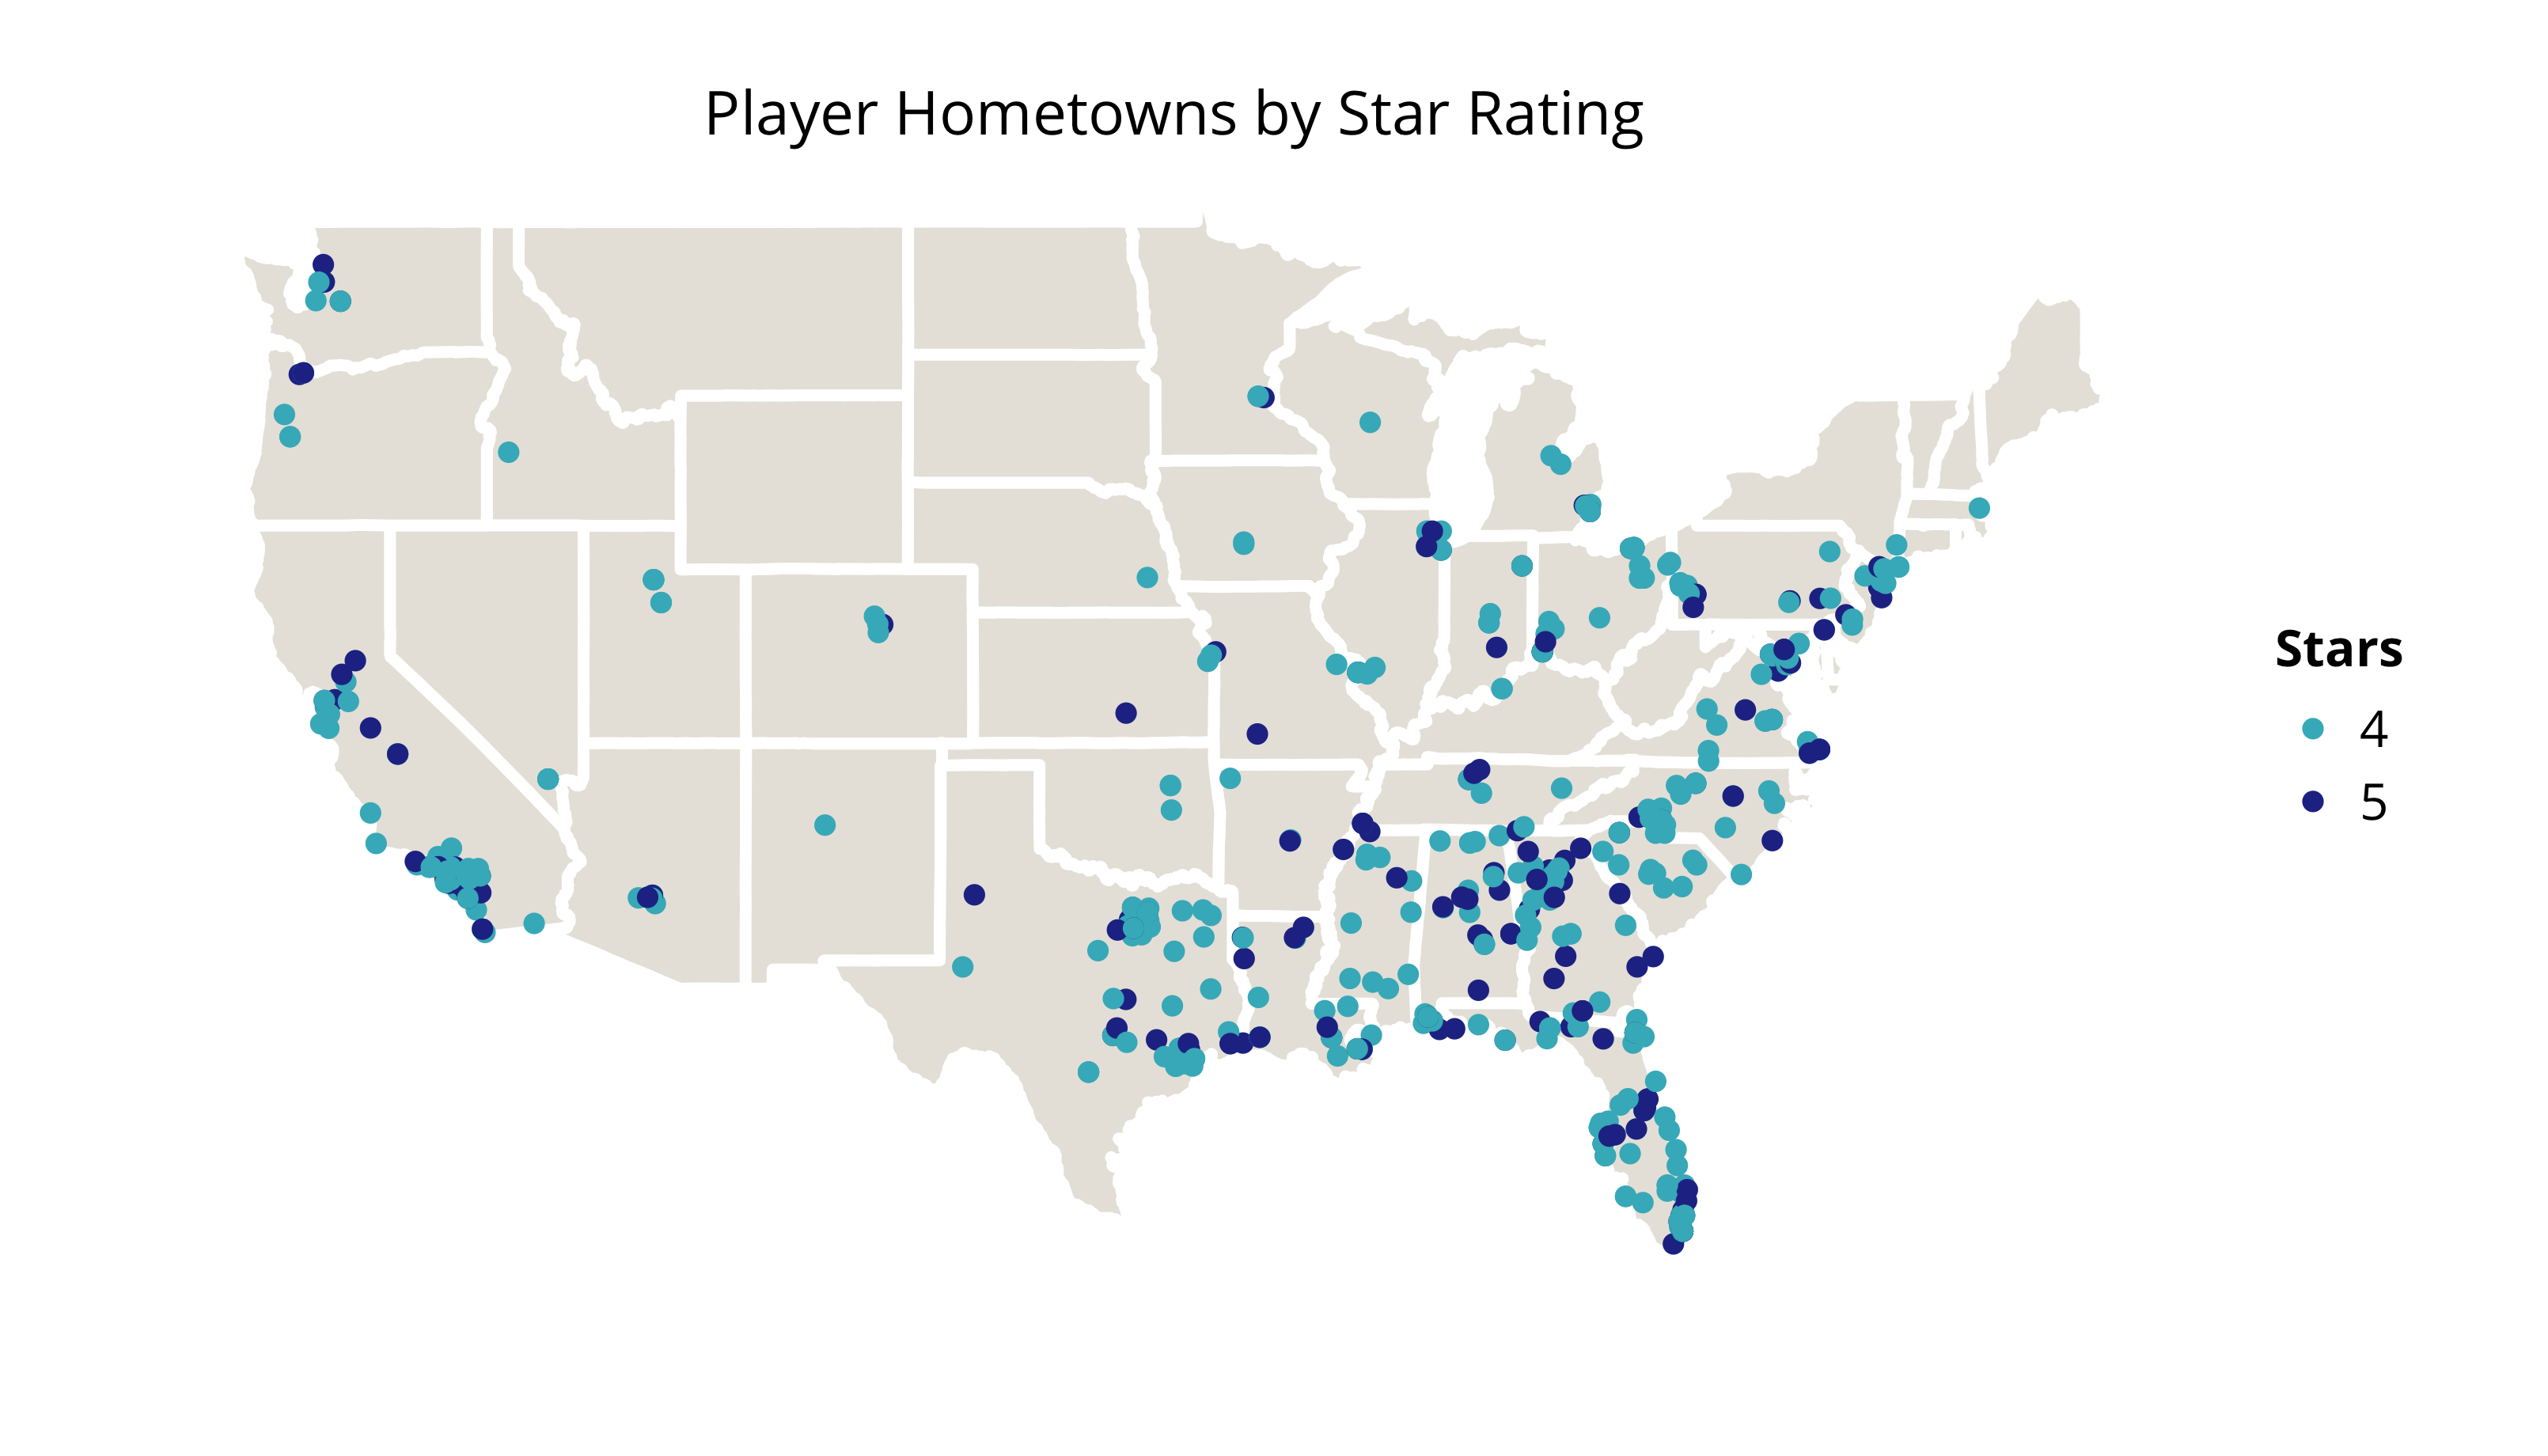 Player Hometowns by Star Rating